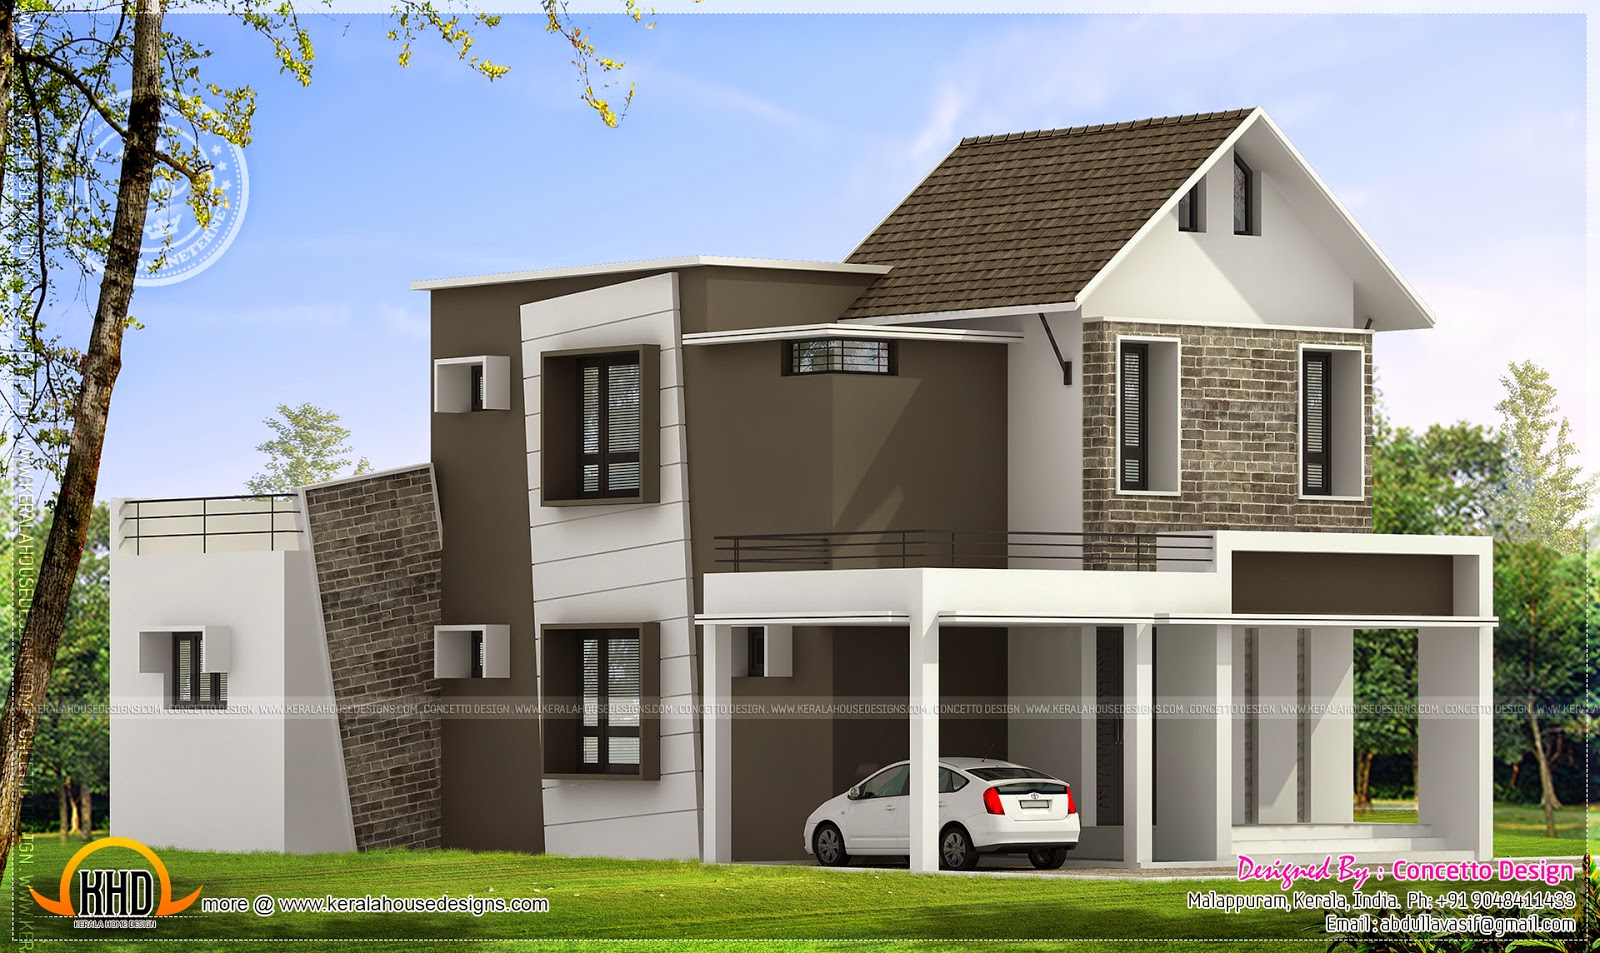 260 square yard house exterior kerala home design and